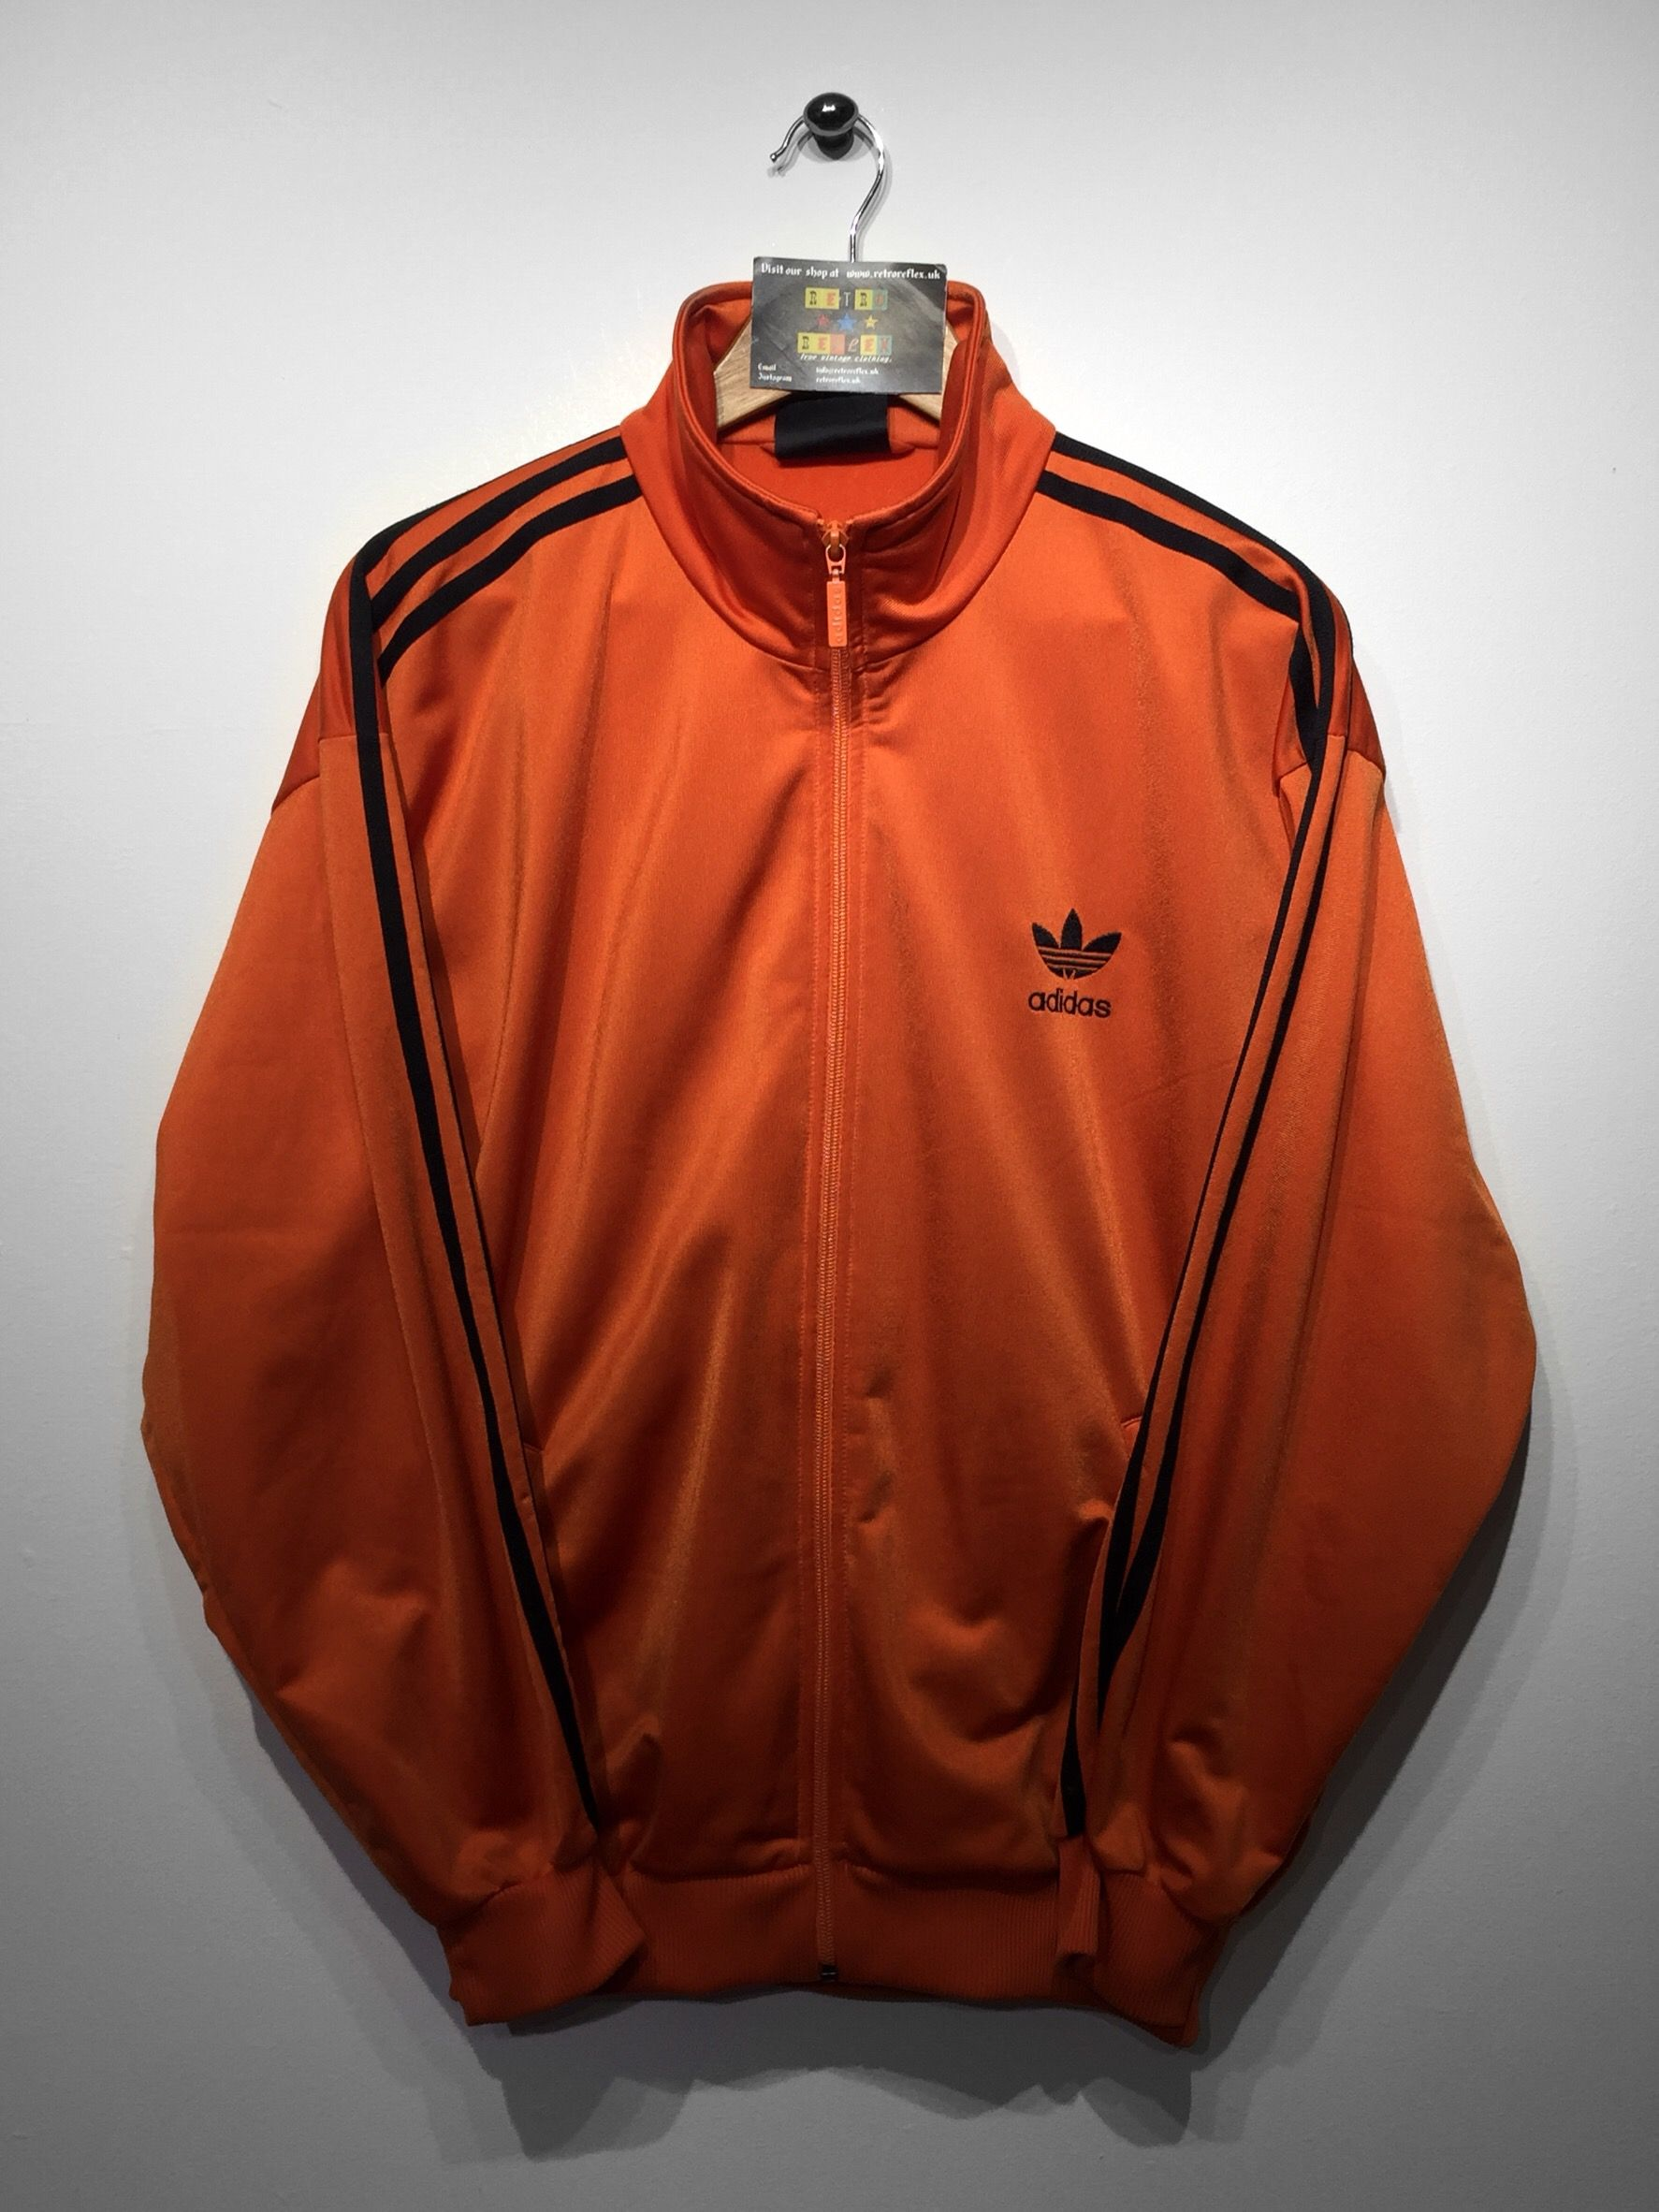 Adidas track jacket size Small (but Fits Oversized) £34